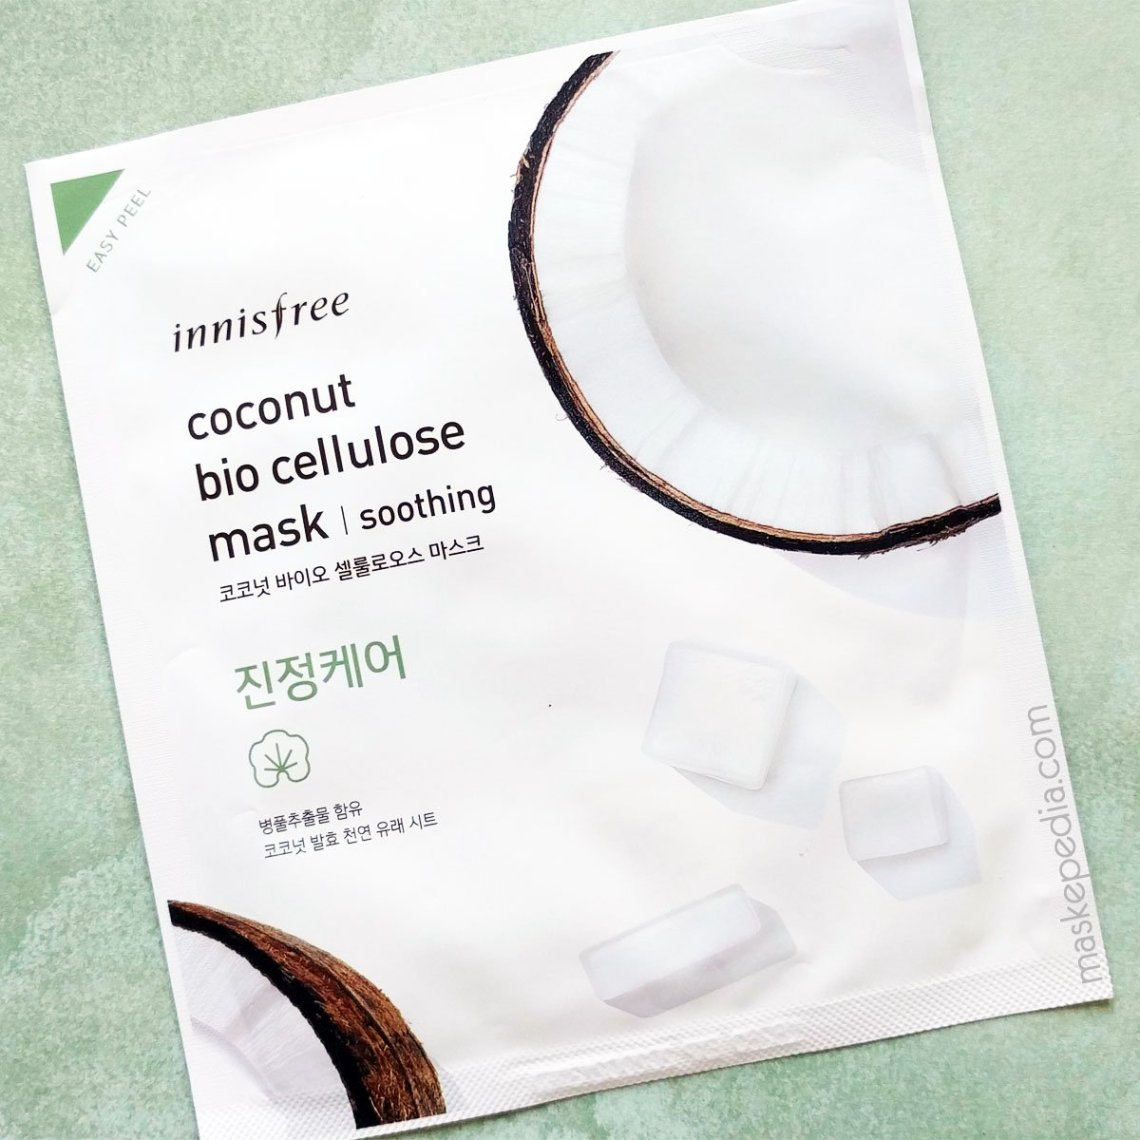 Innisfree Coconut Biocellulose Mask - Soothing